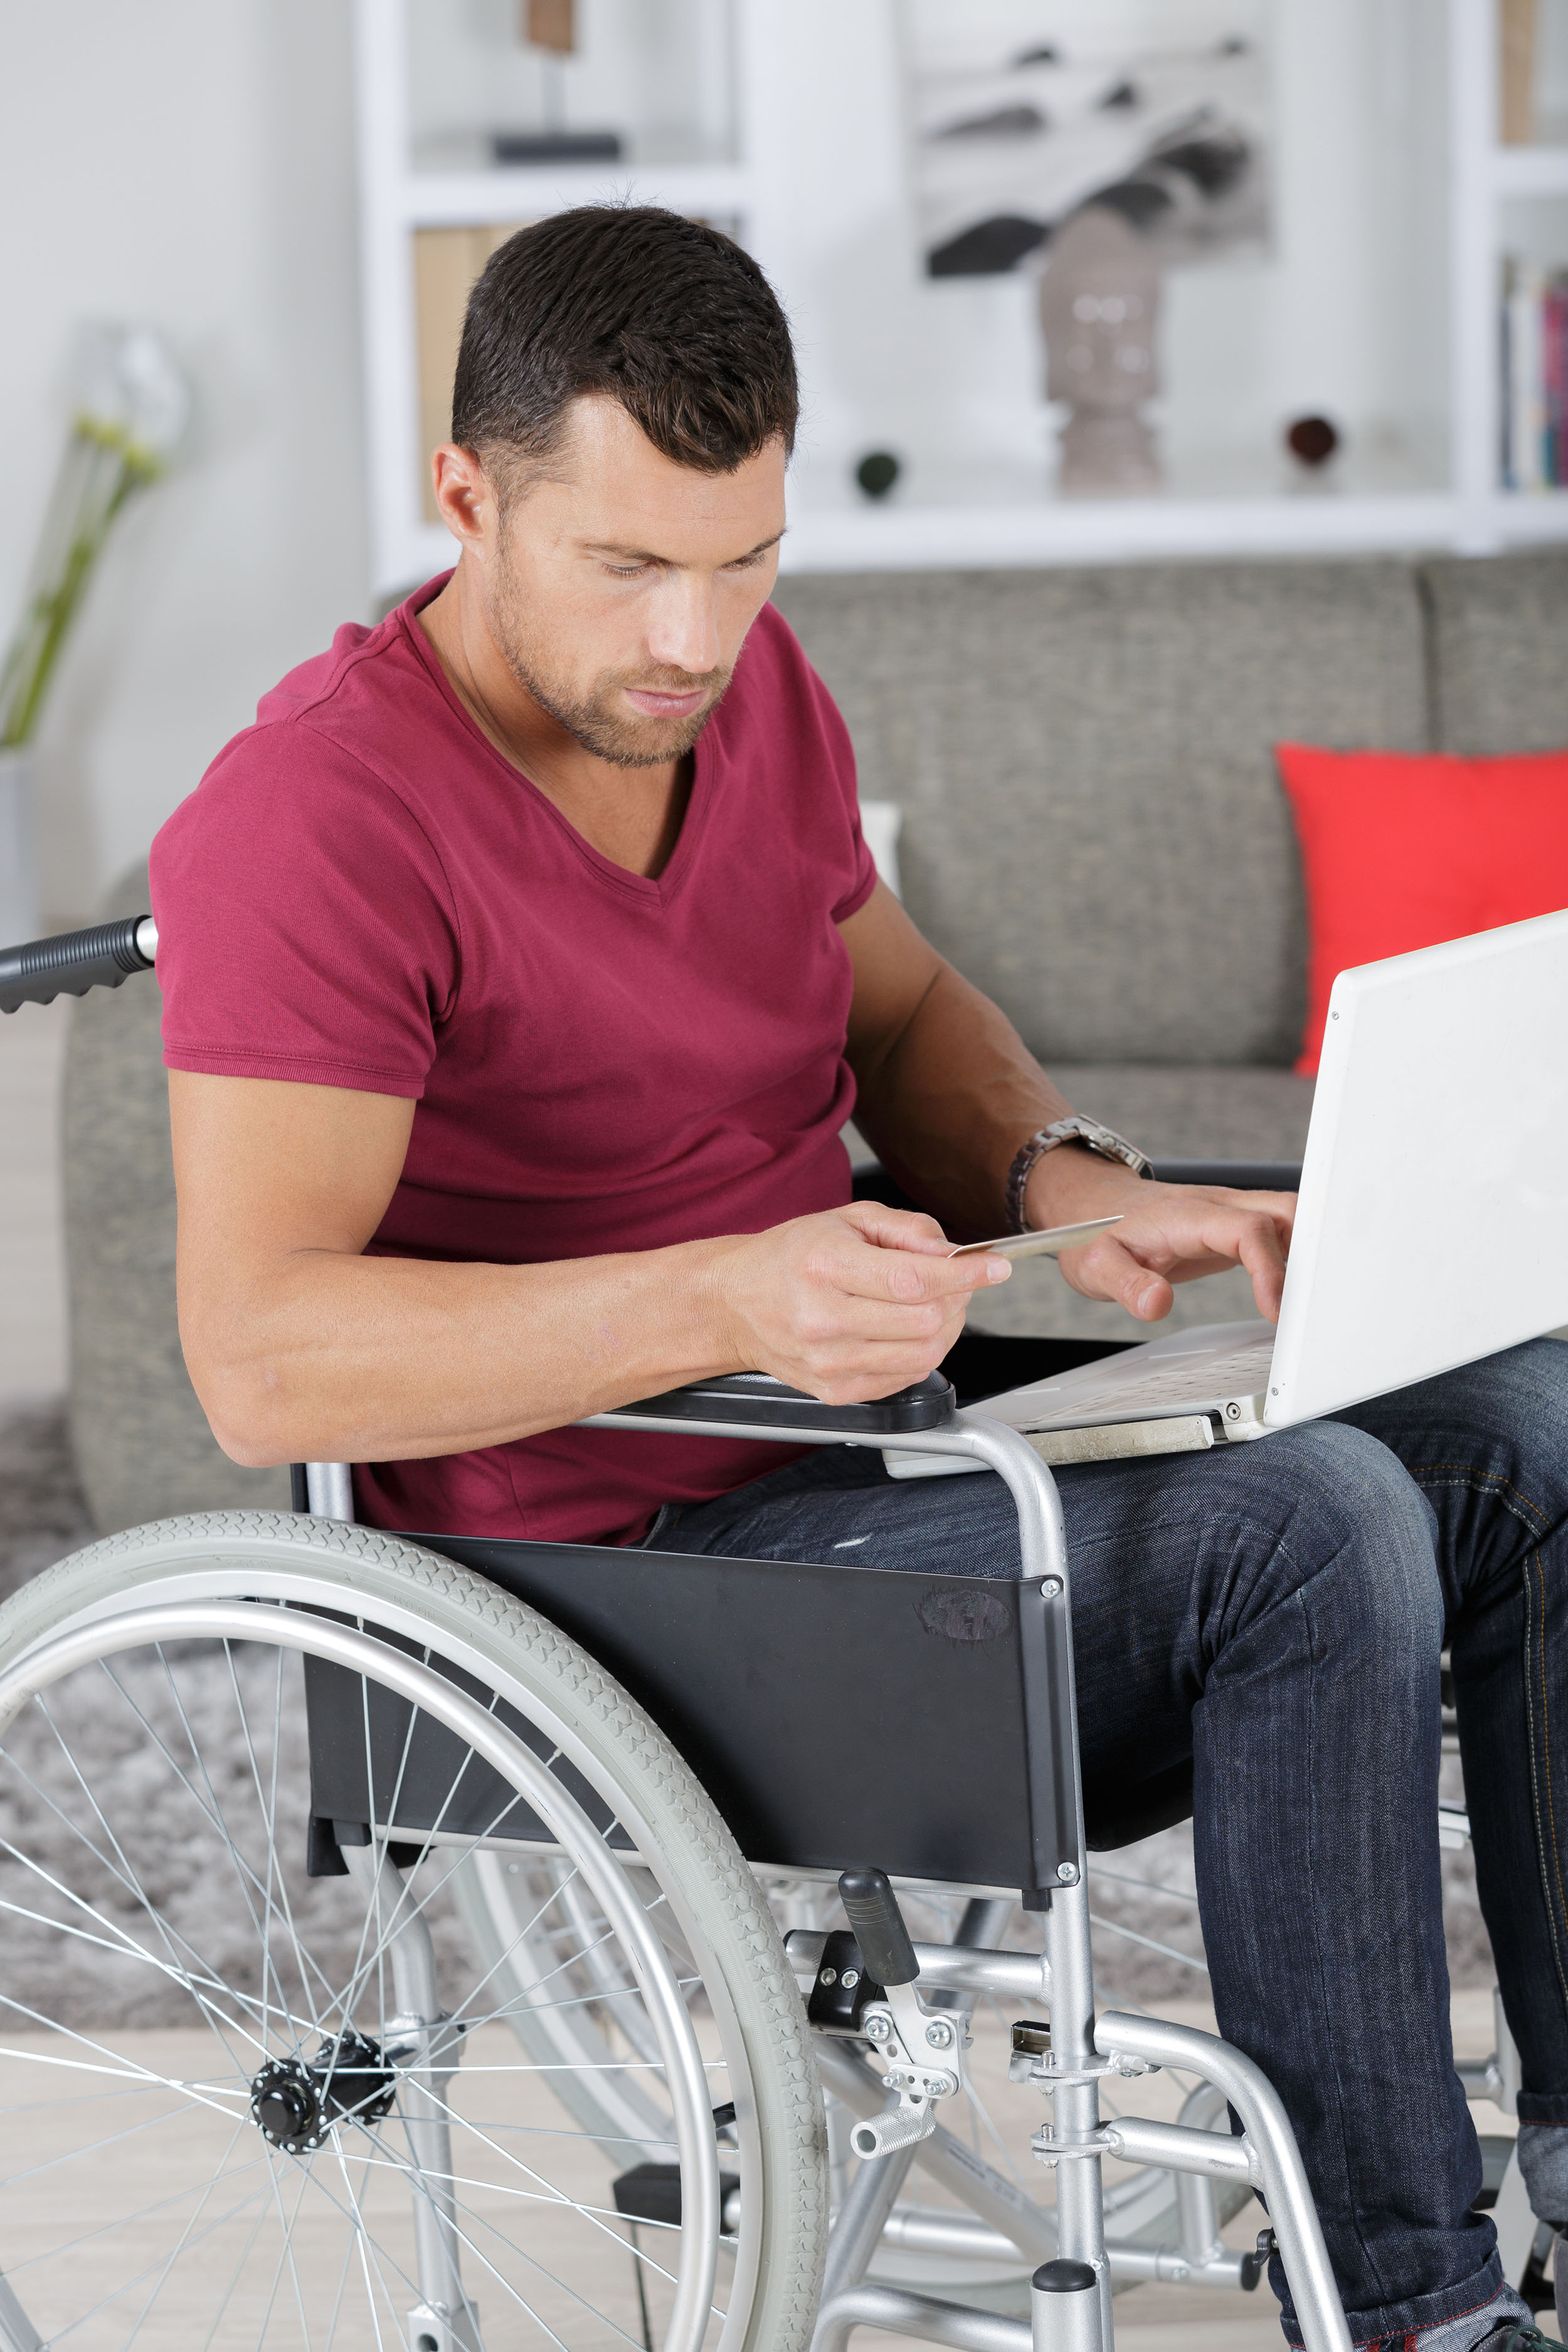 Disabled man in wheelchair typing on laptop.jpg